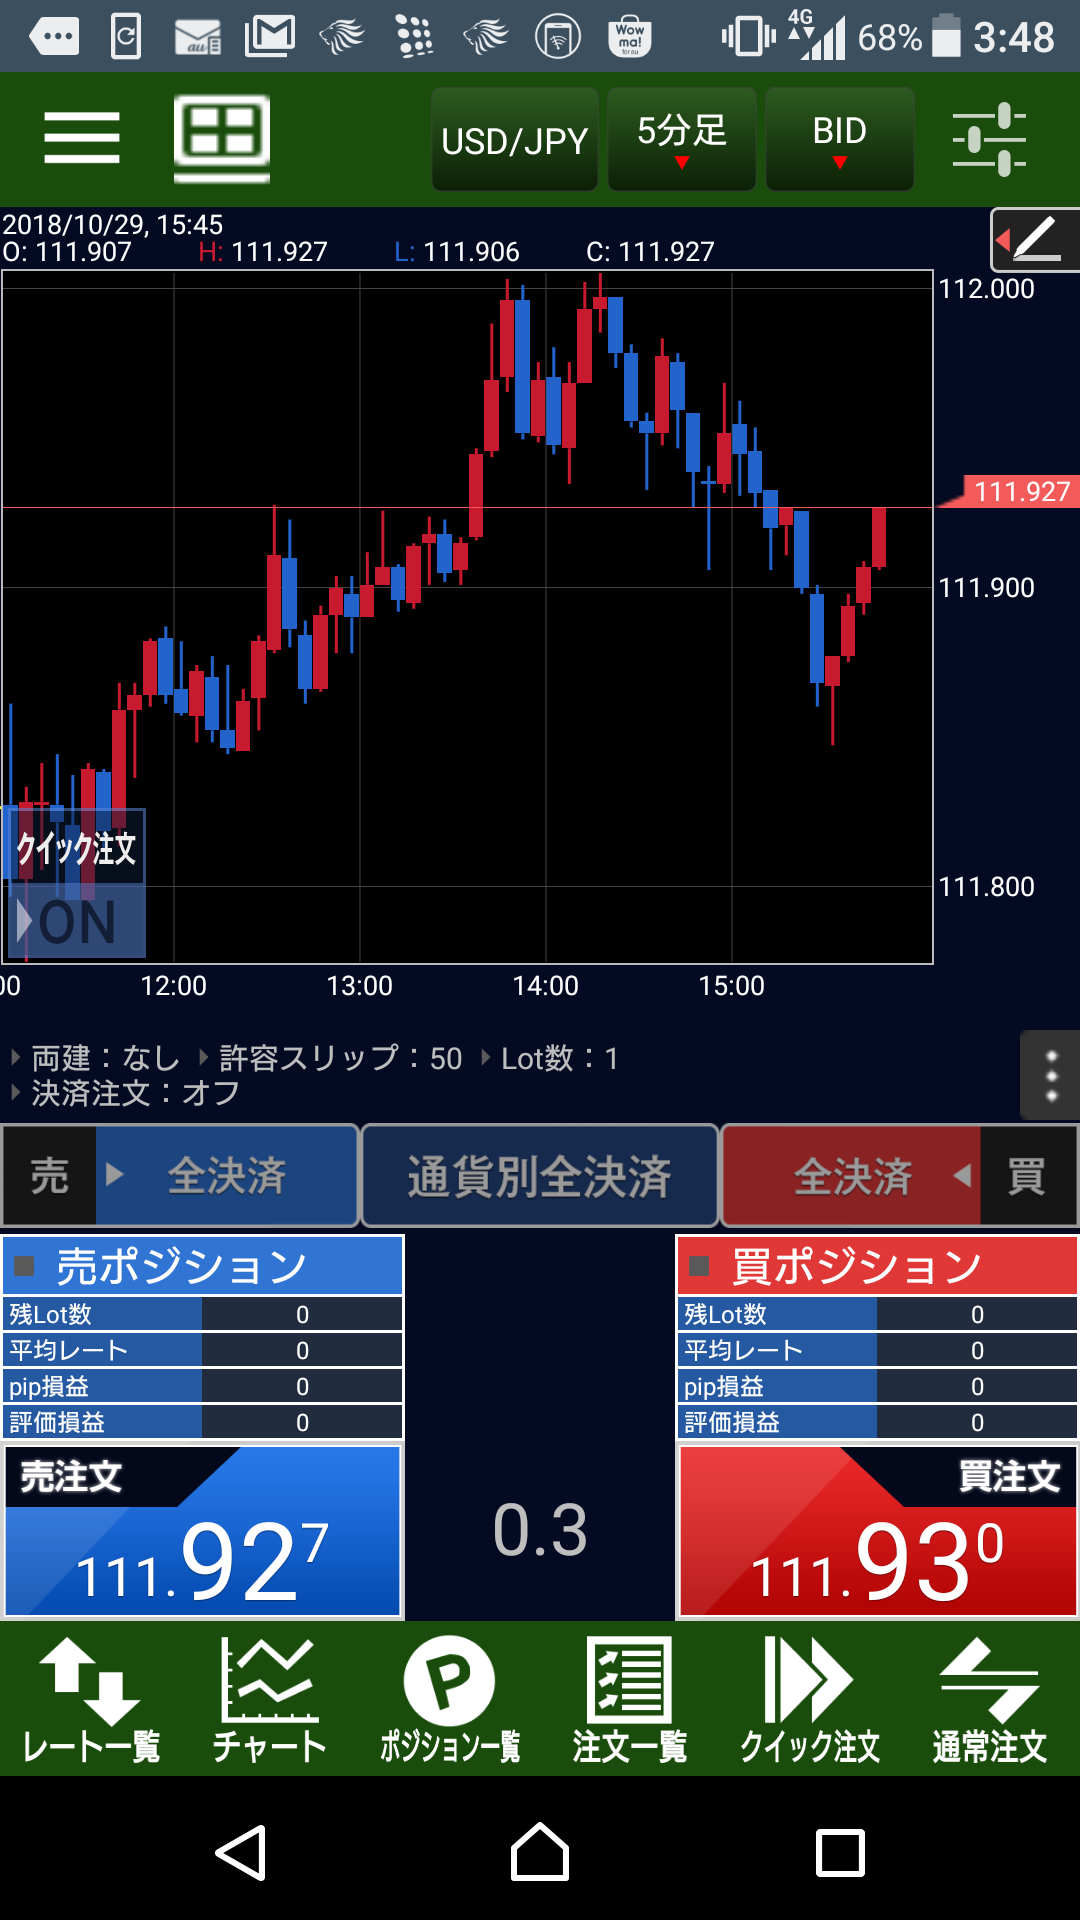 MATRIX TRADER Android版アプリ